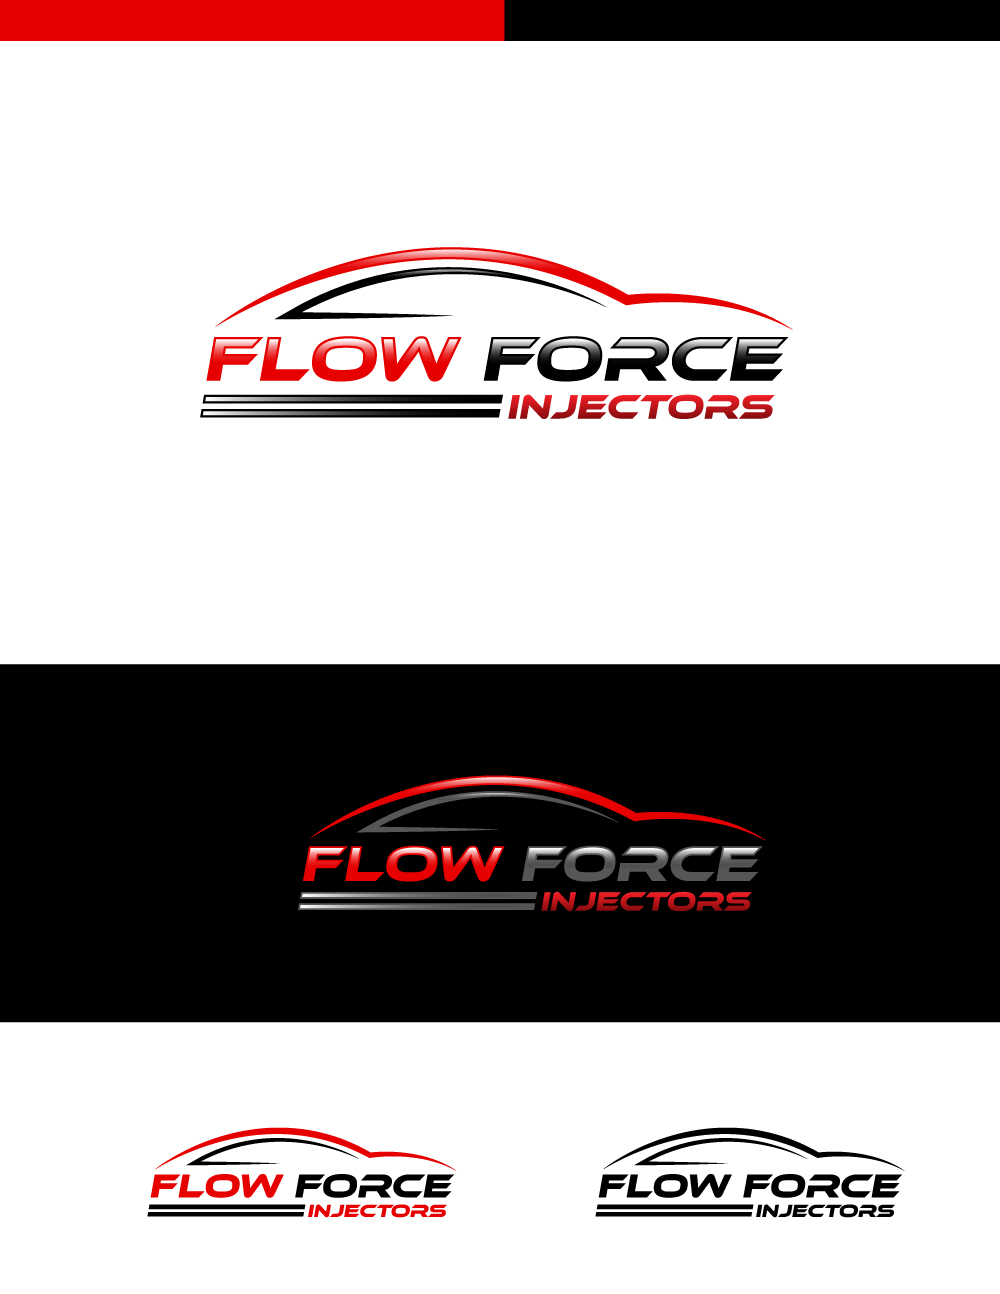 Logo Design by Tauhid Shaikh - Entry No. 9 in the Logo Design Contest Fun Logo Design for Flow Force Injectors.